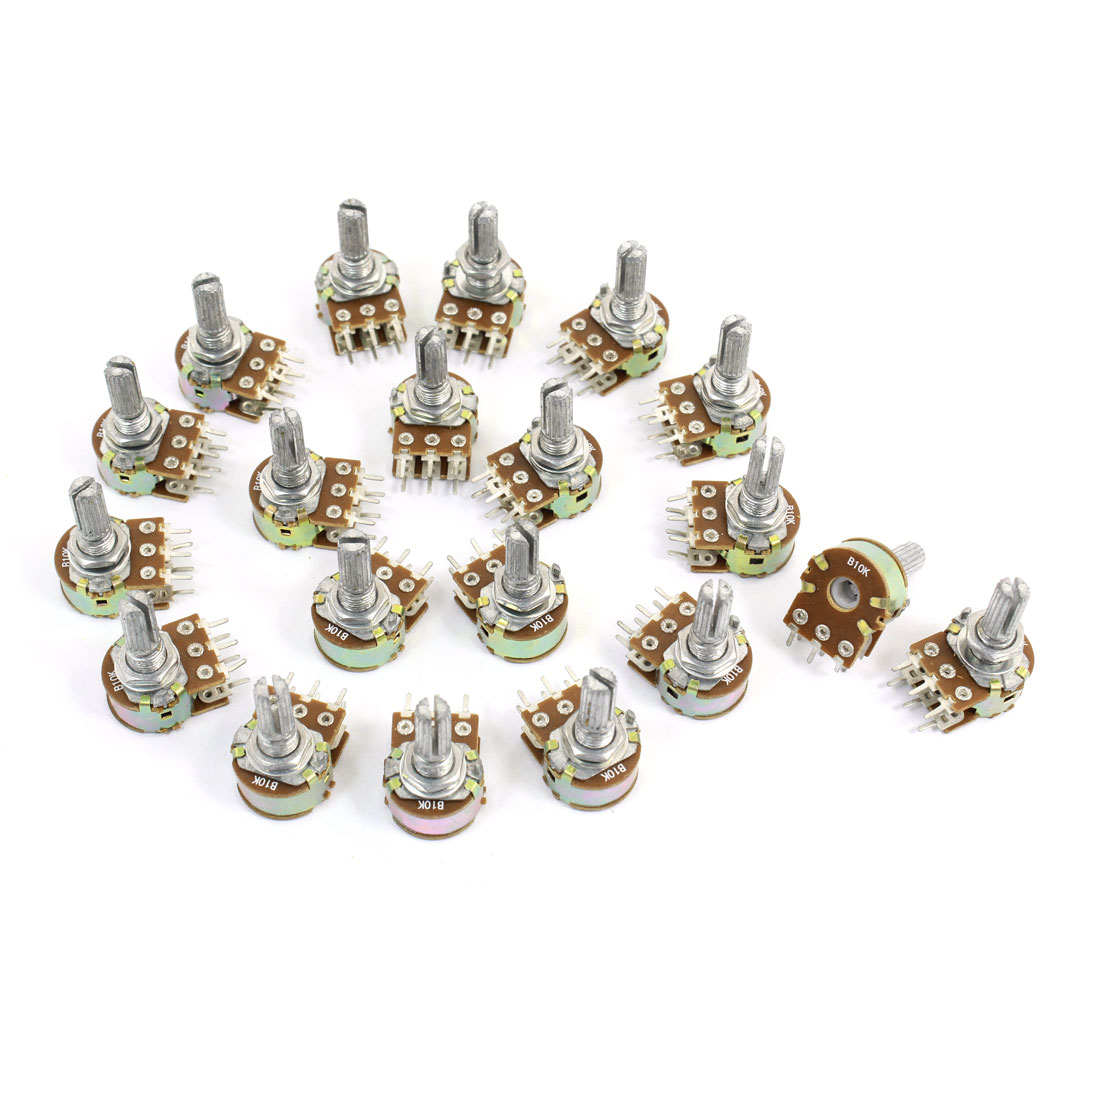 20 Pcs B10K Ohm 20mm Knurled Shaft Adjust Double Linear Potentiometers AC250V